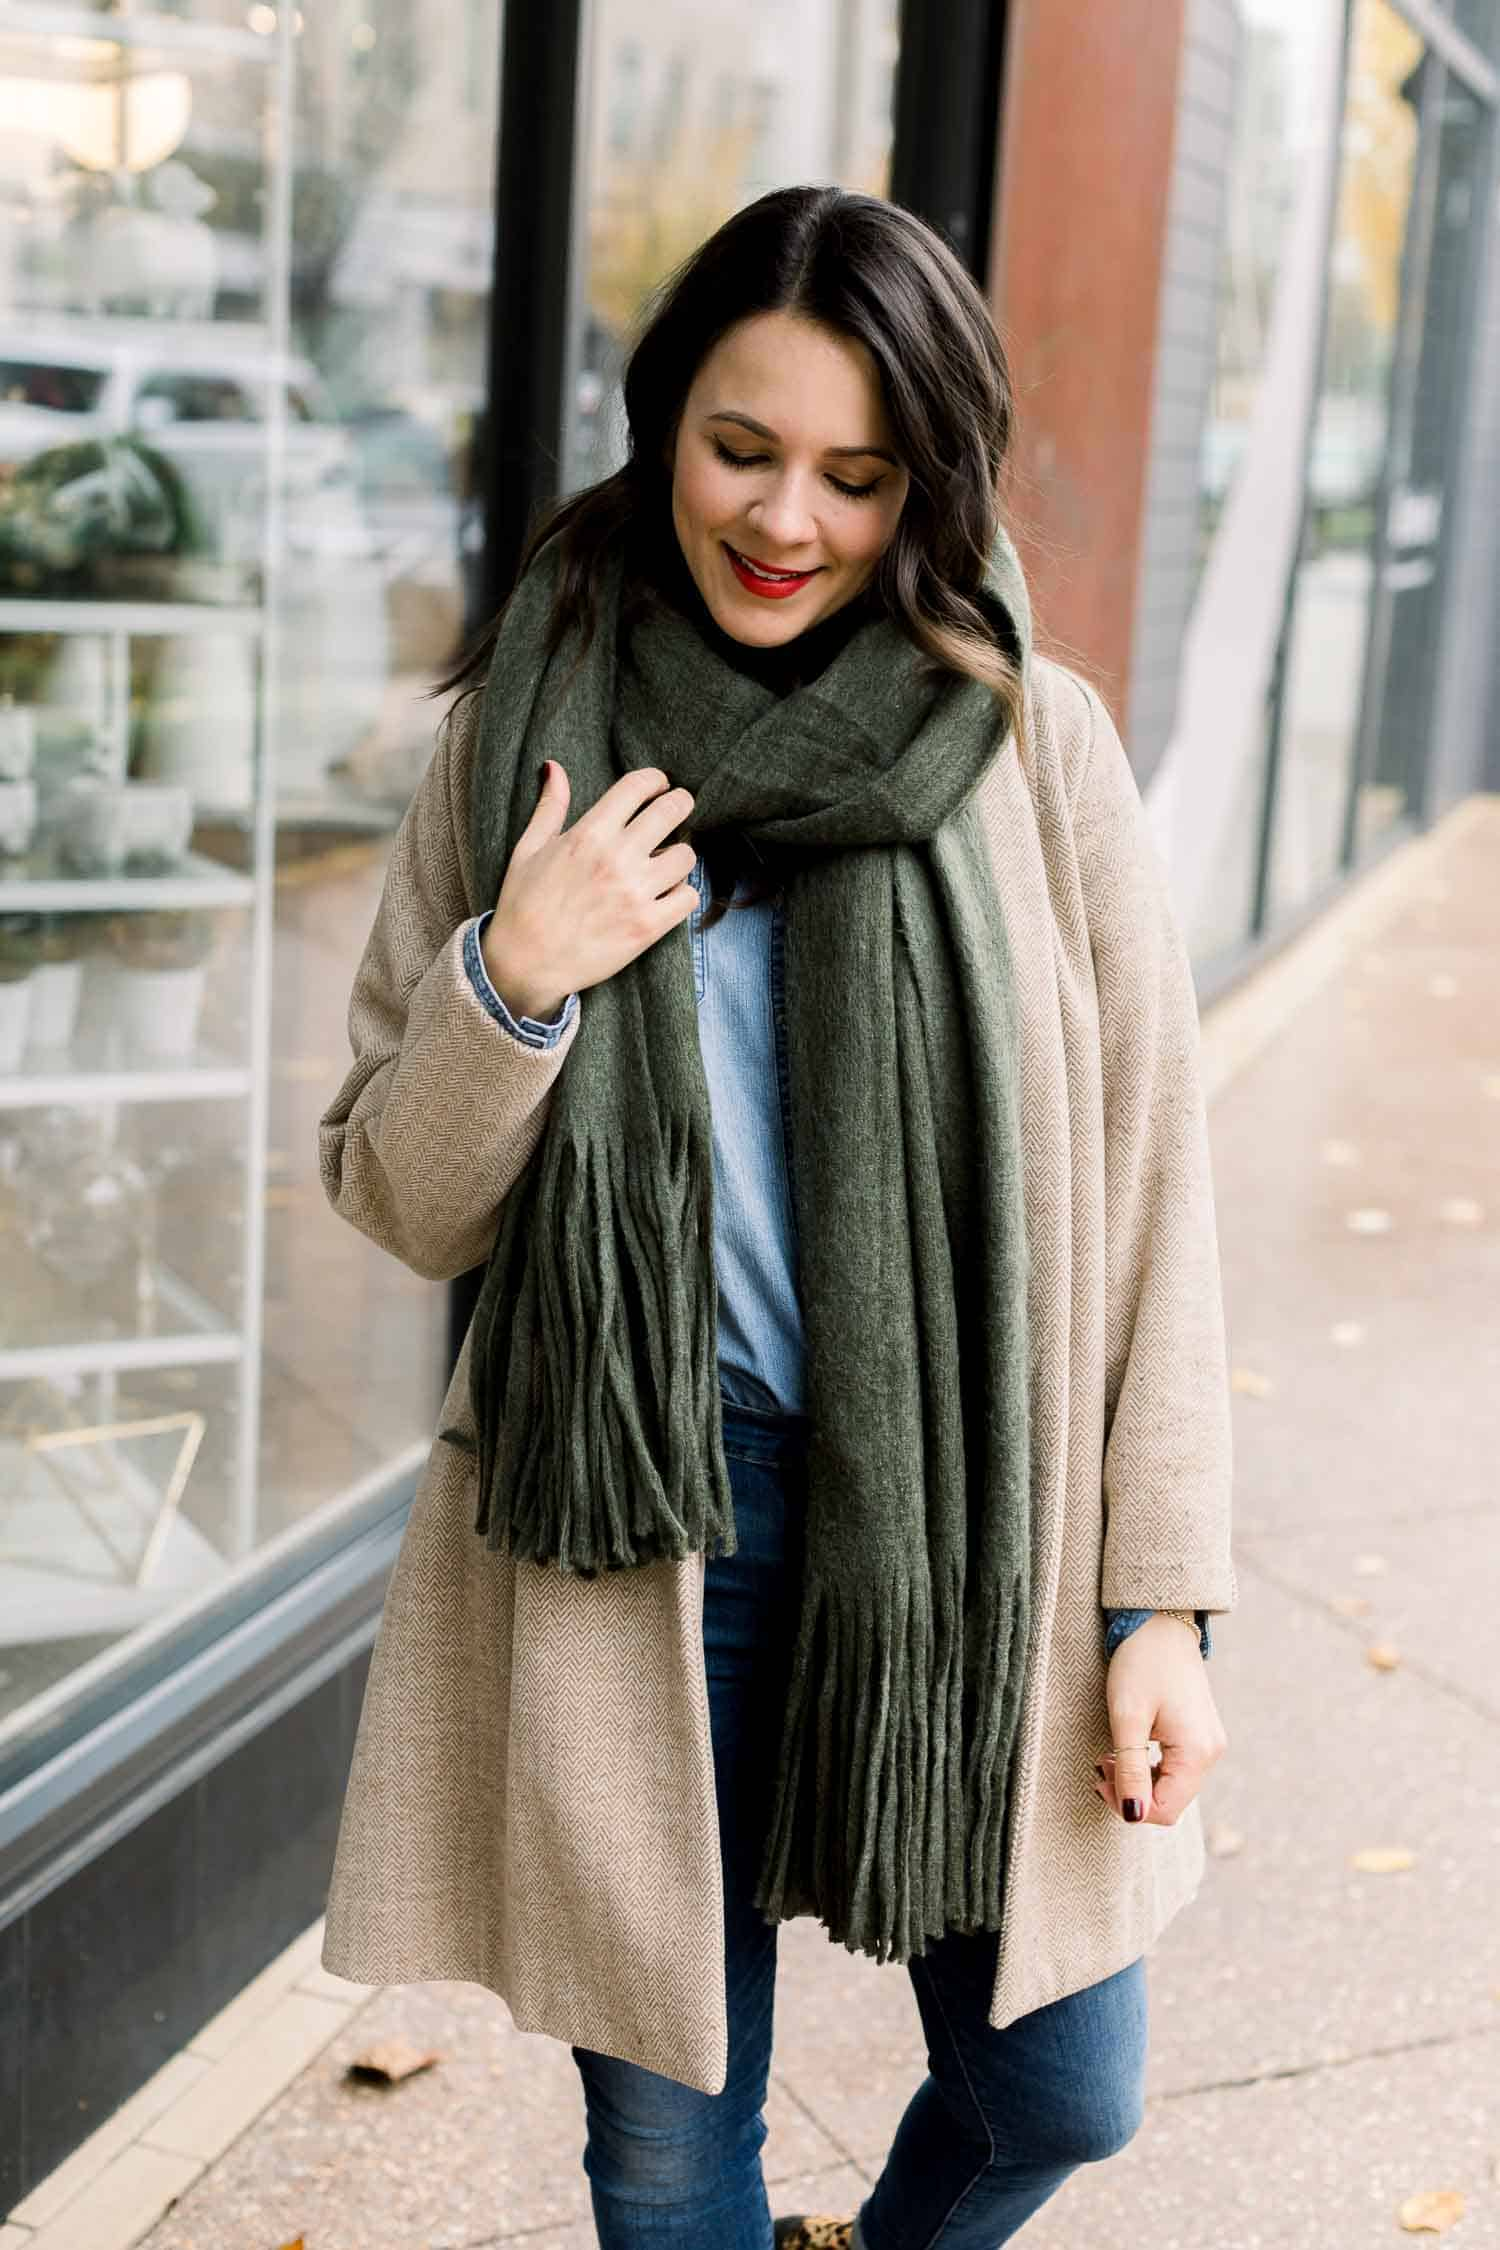 Cozy Fringe Scarf - What to wear to wine country in the winter